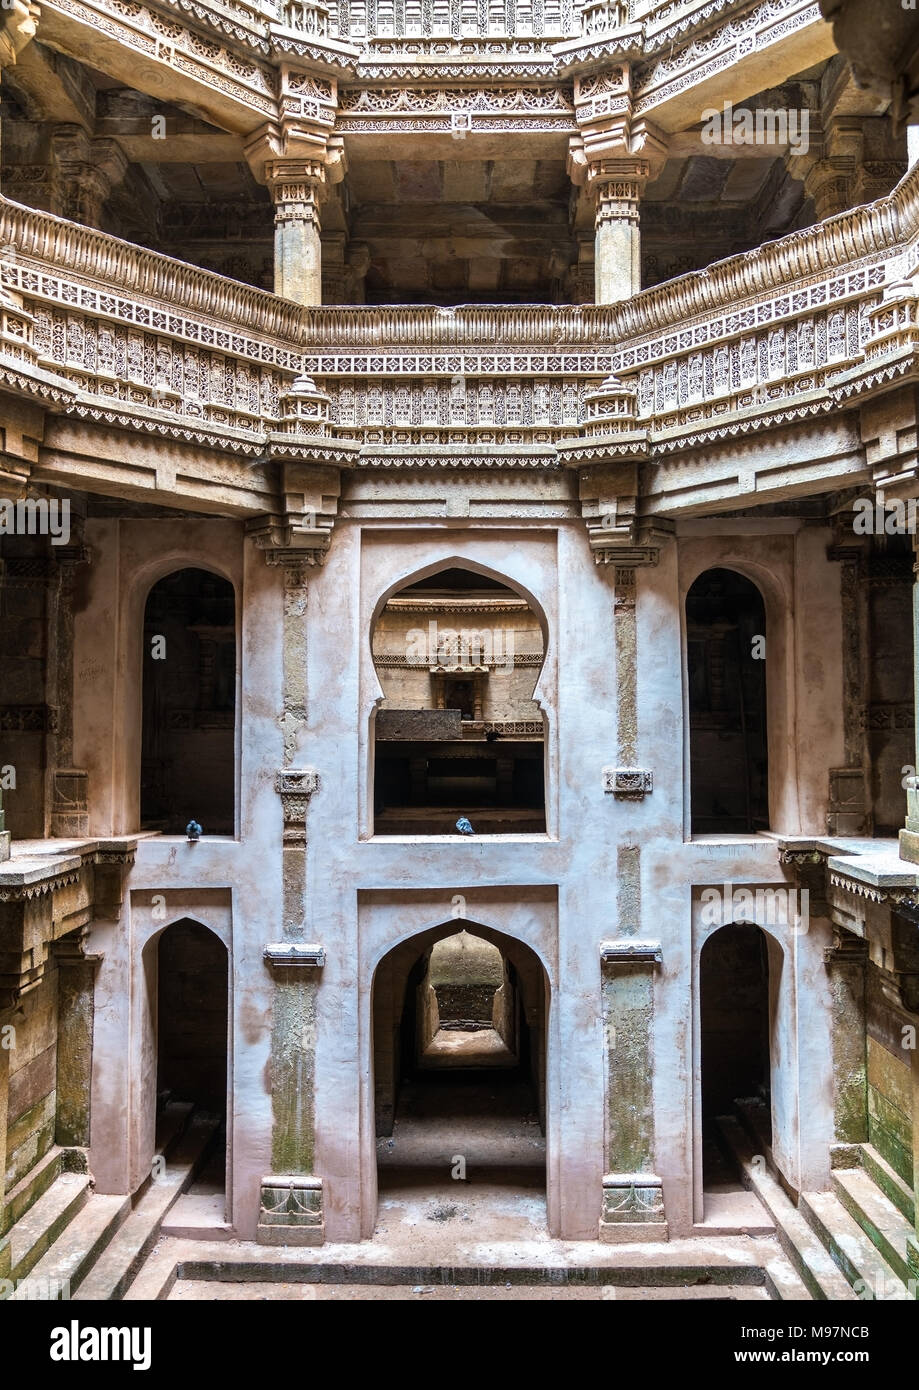 Adalaj or Rudabai Stepwell in Adalaj village near Ahmedabad - Gujarat State of India - Stock Image